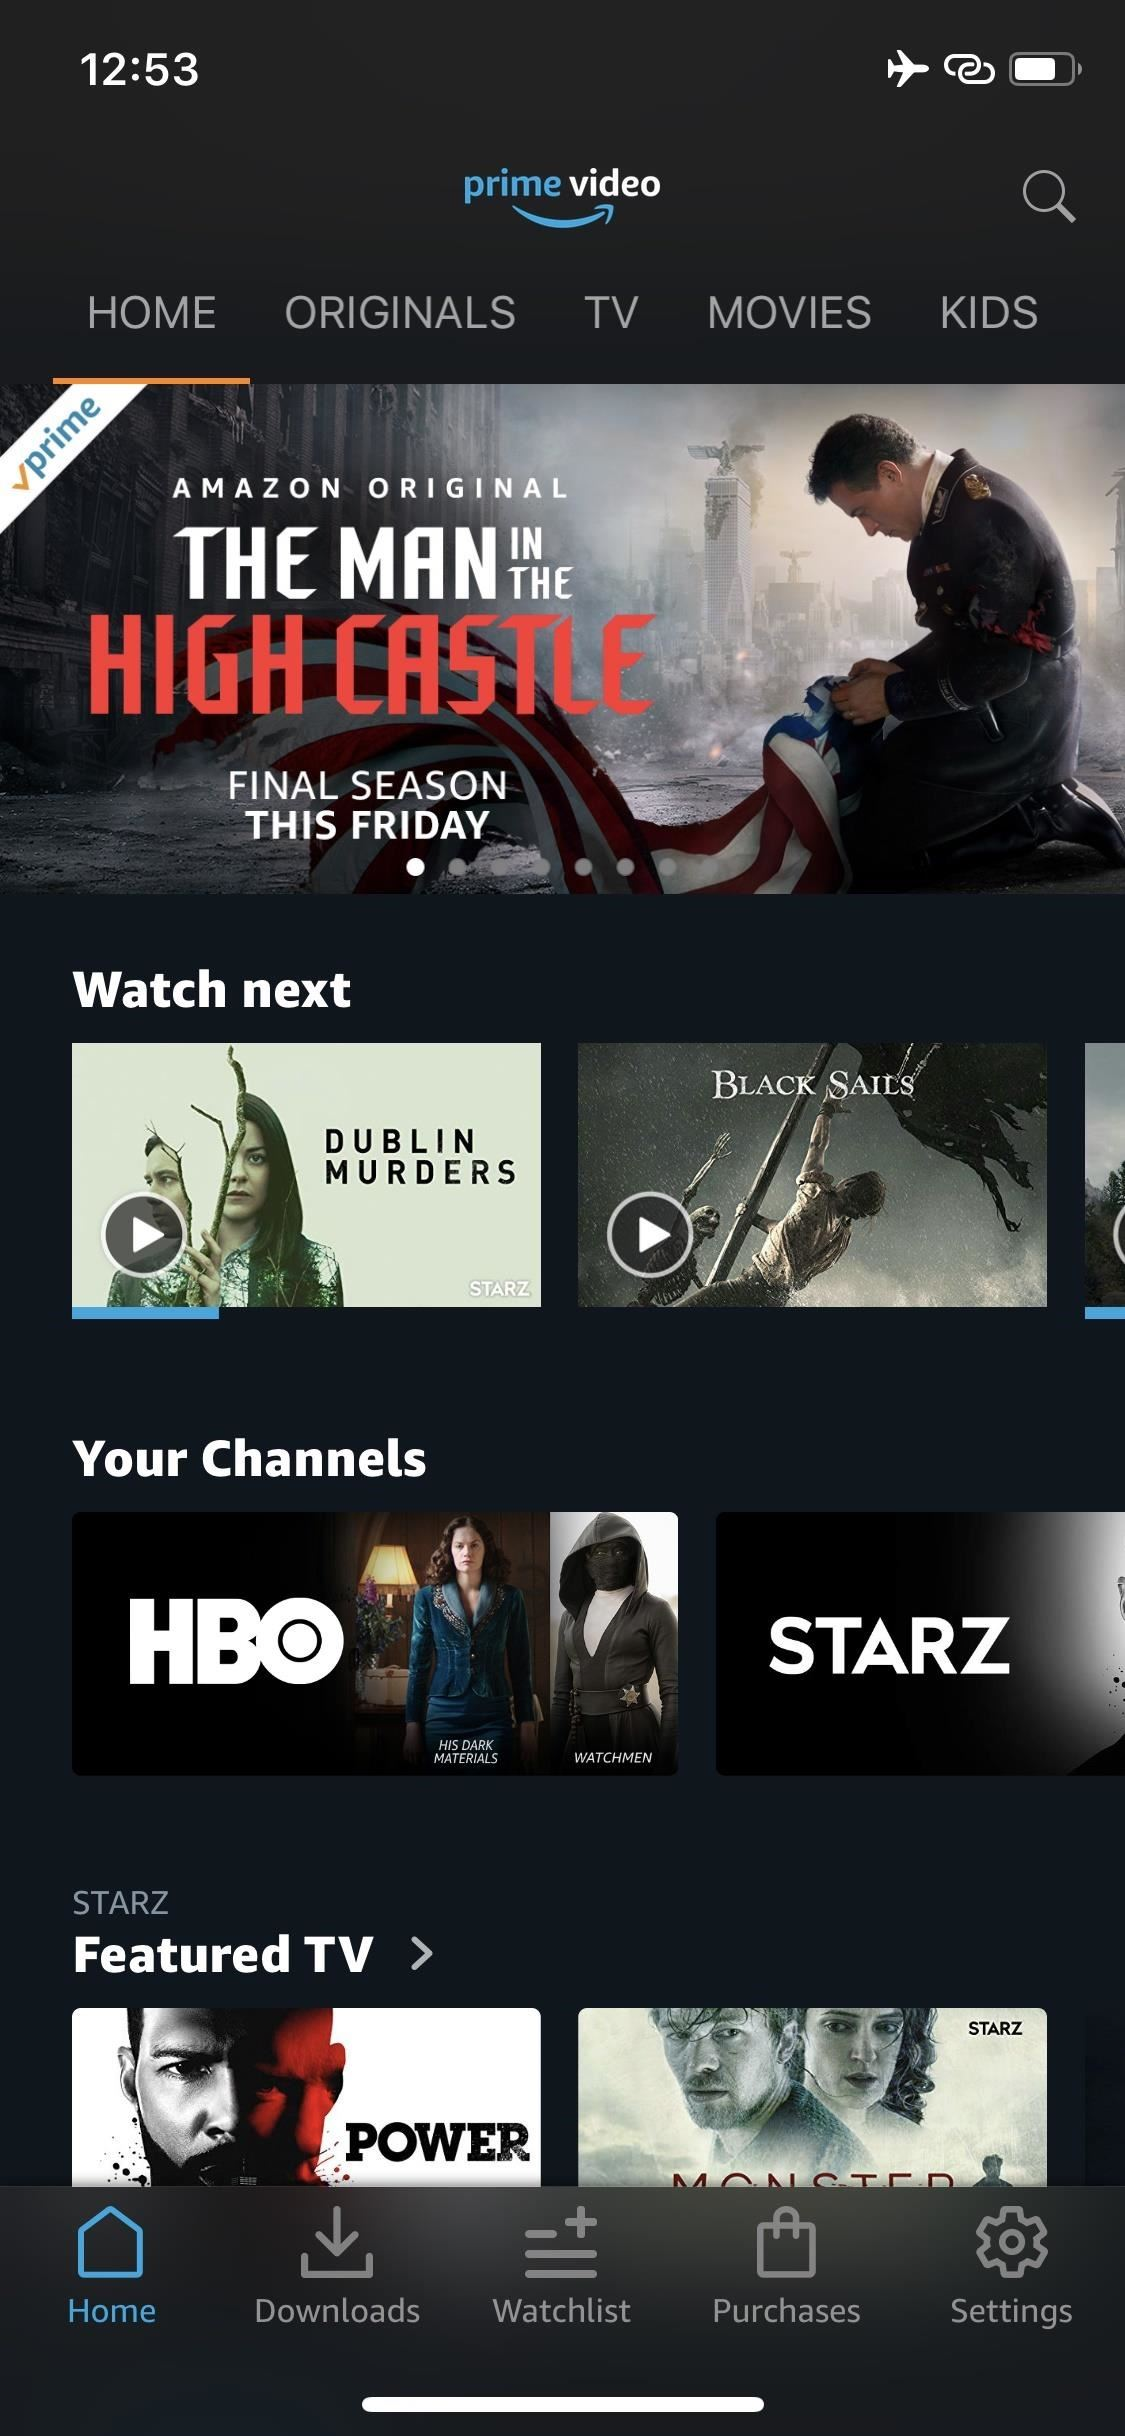 Best TV Streaming Apps: Disney+ vs. Apple TV+ vs. Netflix vs. Hulu vs. Amazon Prime